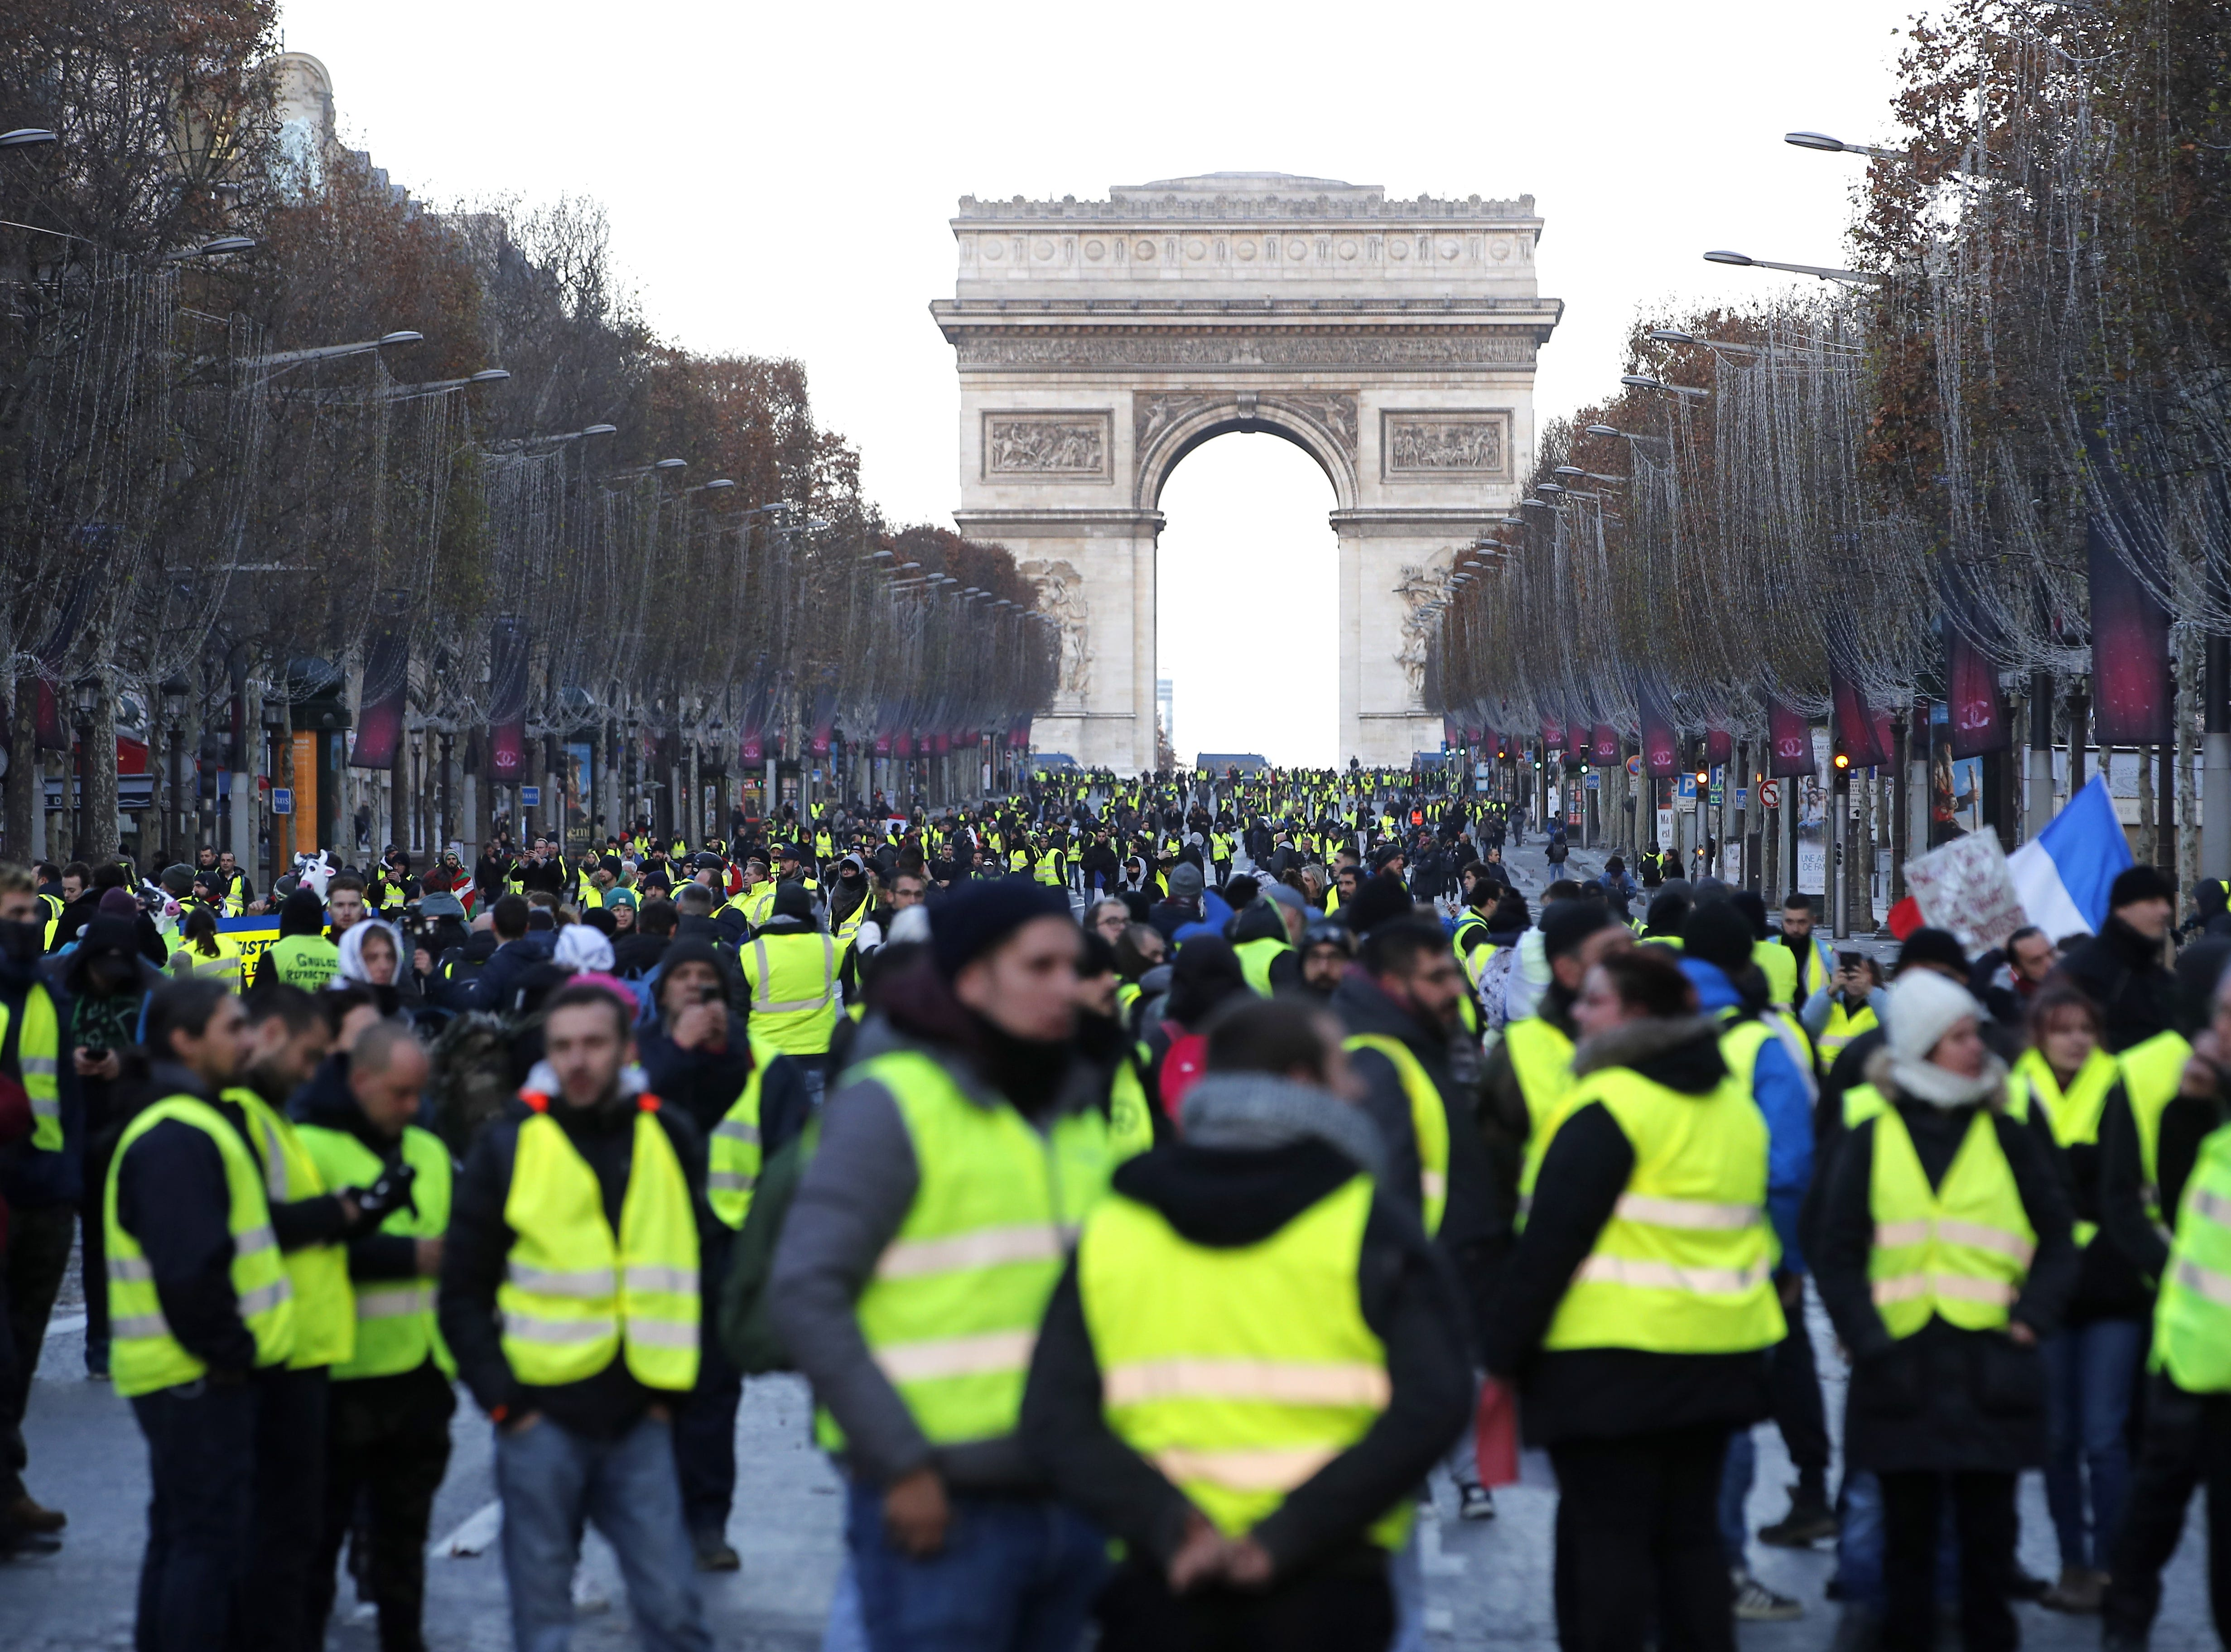 Yellow Vests protesters walk down the Champs Elysees avenue to Place de la Concorde during a demonstration in Paris, France on Dec.8, 2018. Police in Paris is preparing for another weekend of protests of the so-called 'gilets jaunes' (yellow vests) protest movement. Recent demonstrations of the movement, which reportedly has no political affiliation, had turned violent and caused authorities to close some landmark sites in Paris this weekend.  Seen in background is the landmark Arc de Triomphe.